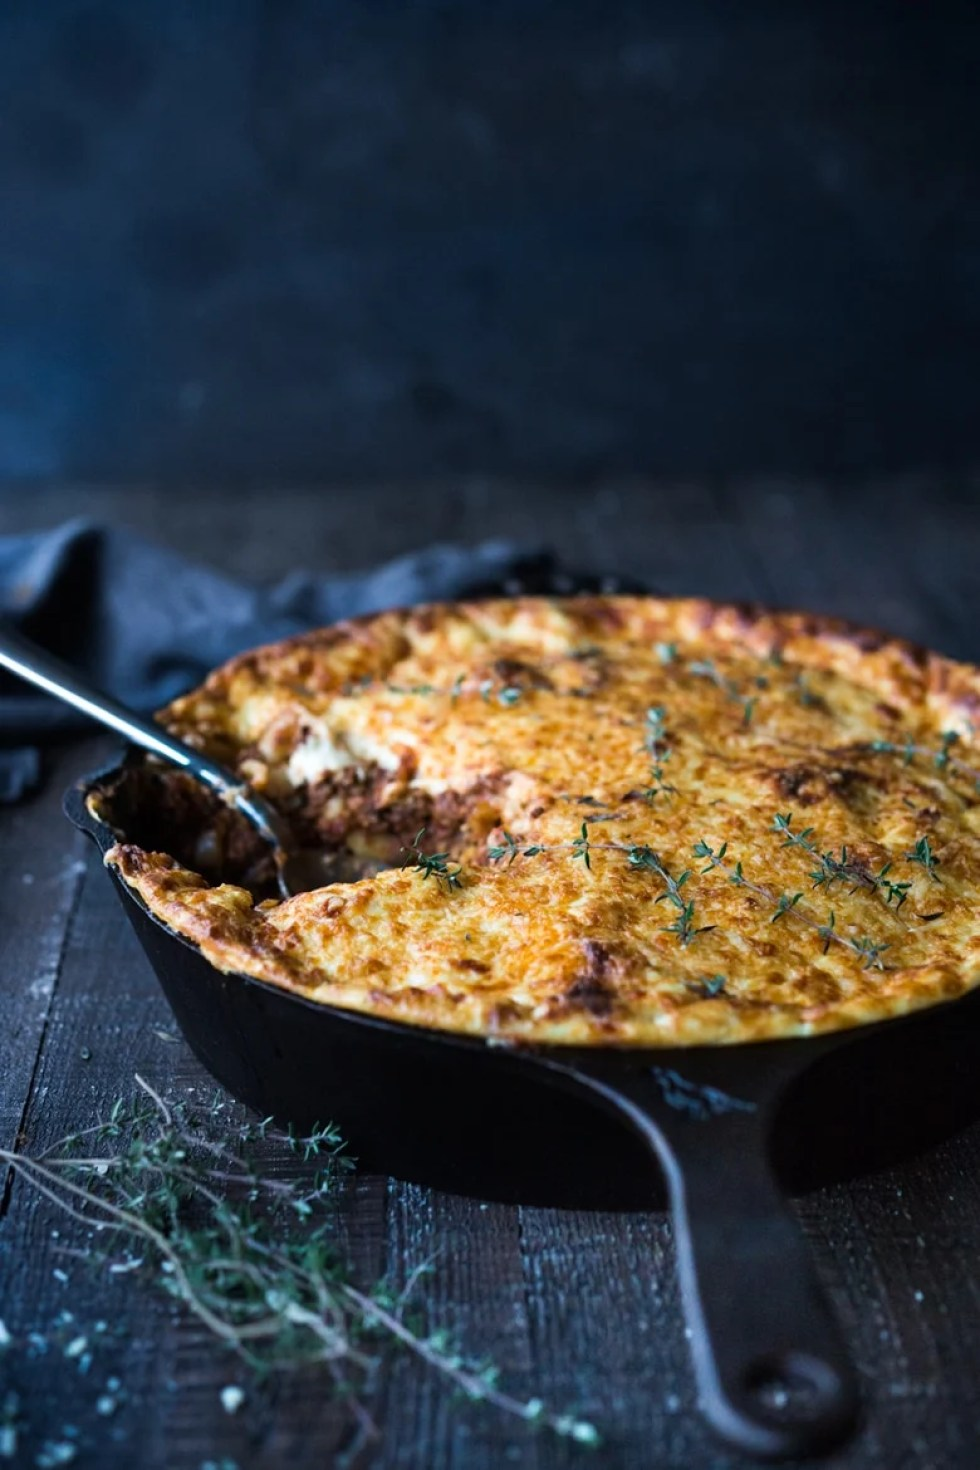 Simple authentic Greek baked pasta dish with a rich flavorful lamb (or beef) bolognese infused with Greek spices and flavors. Perfect for entertaining!